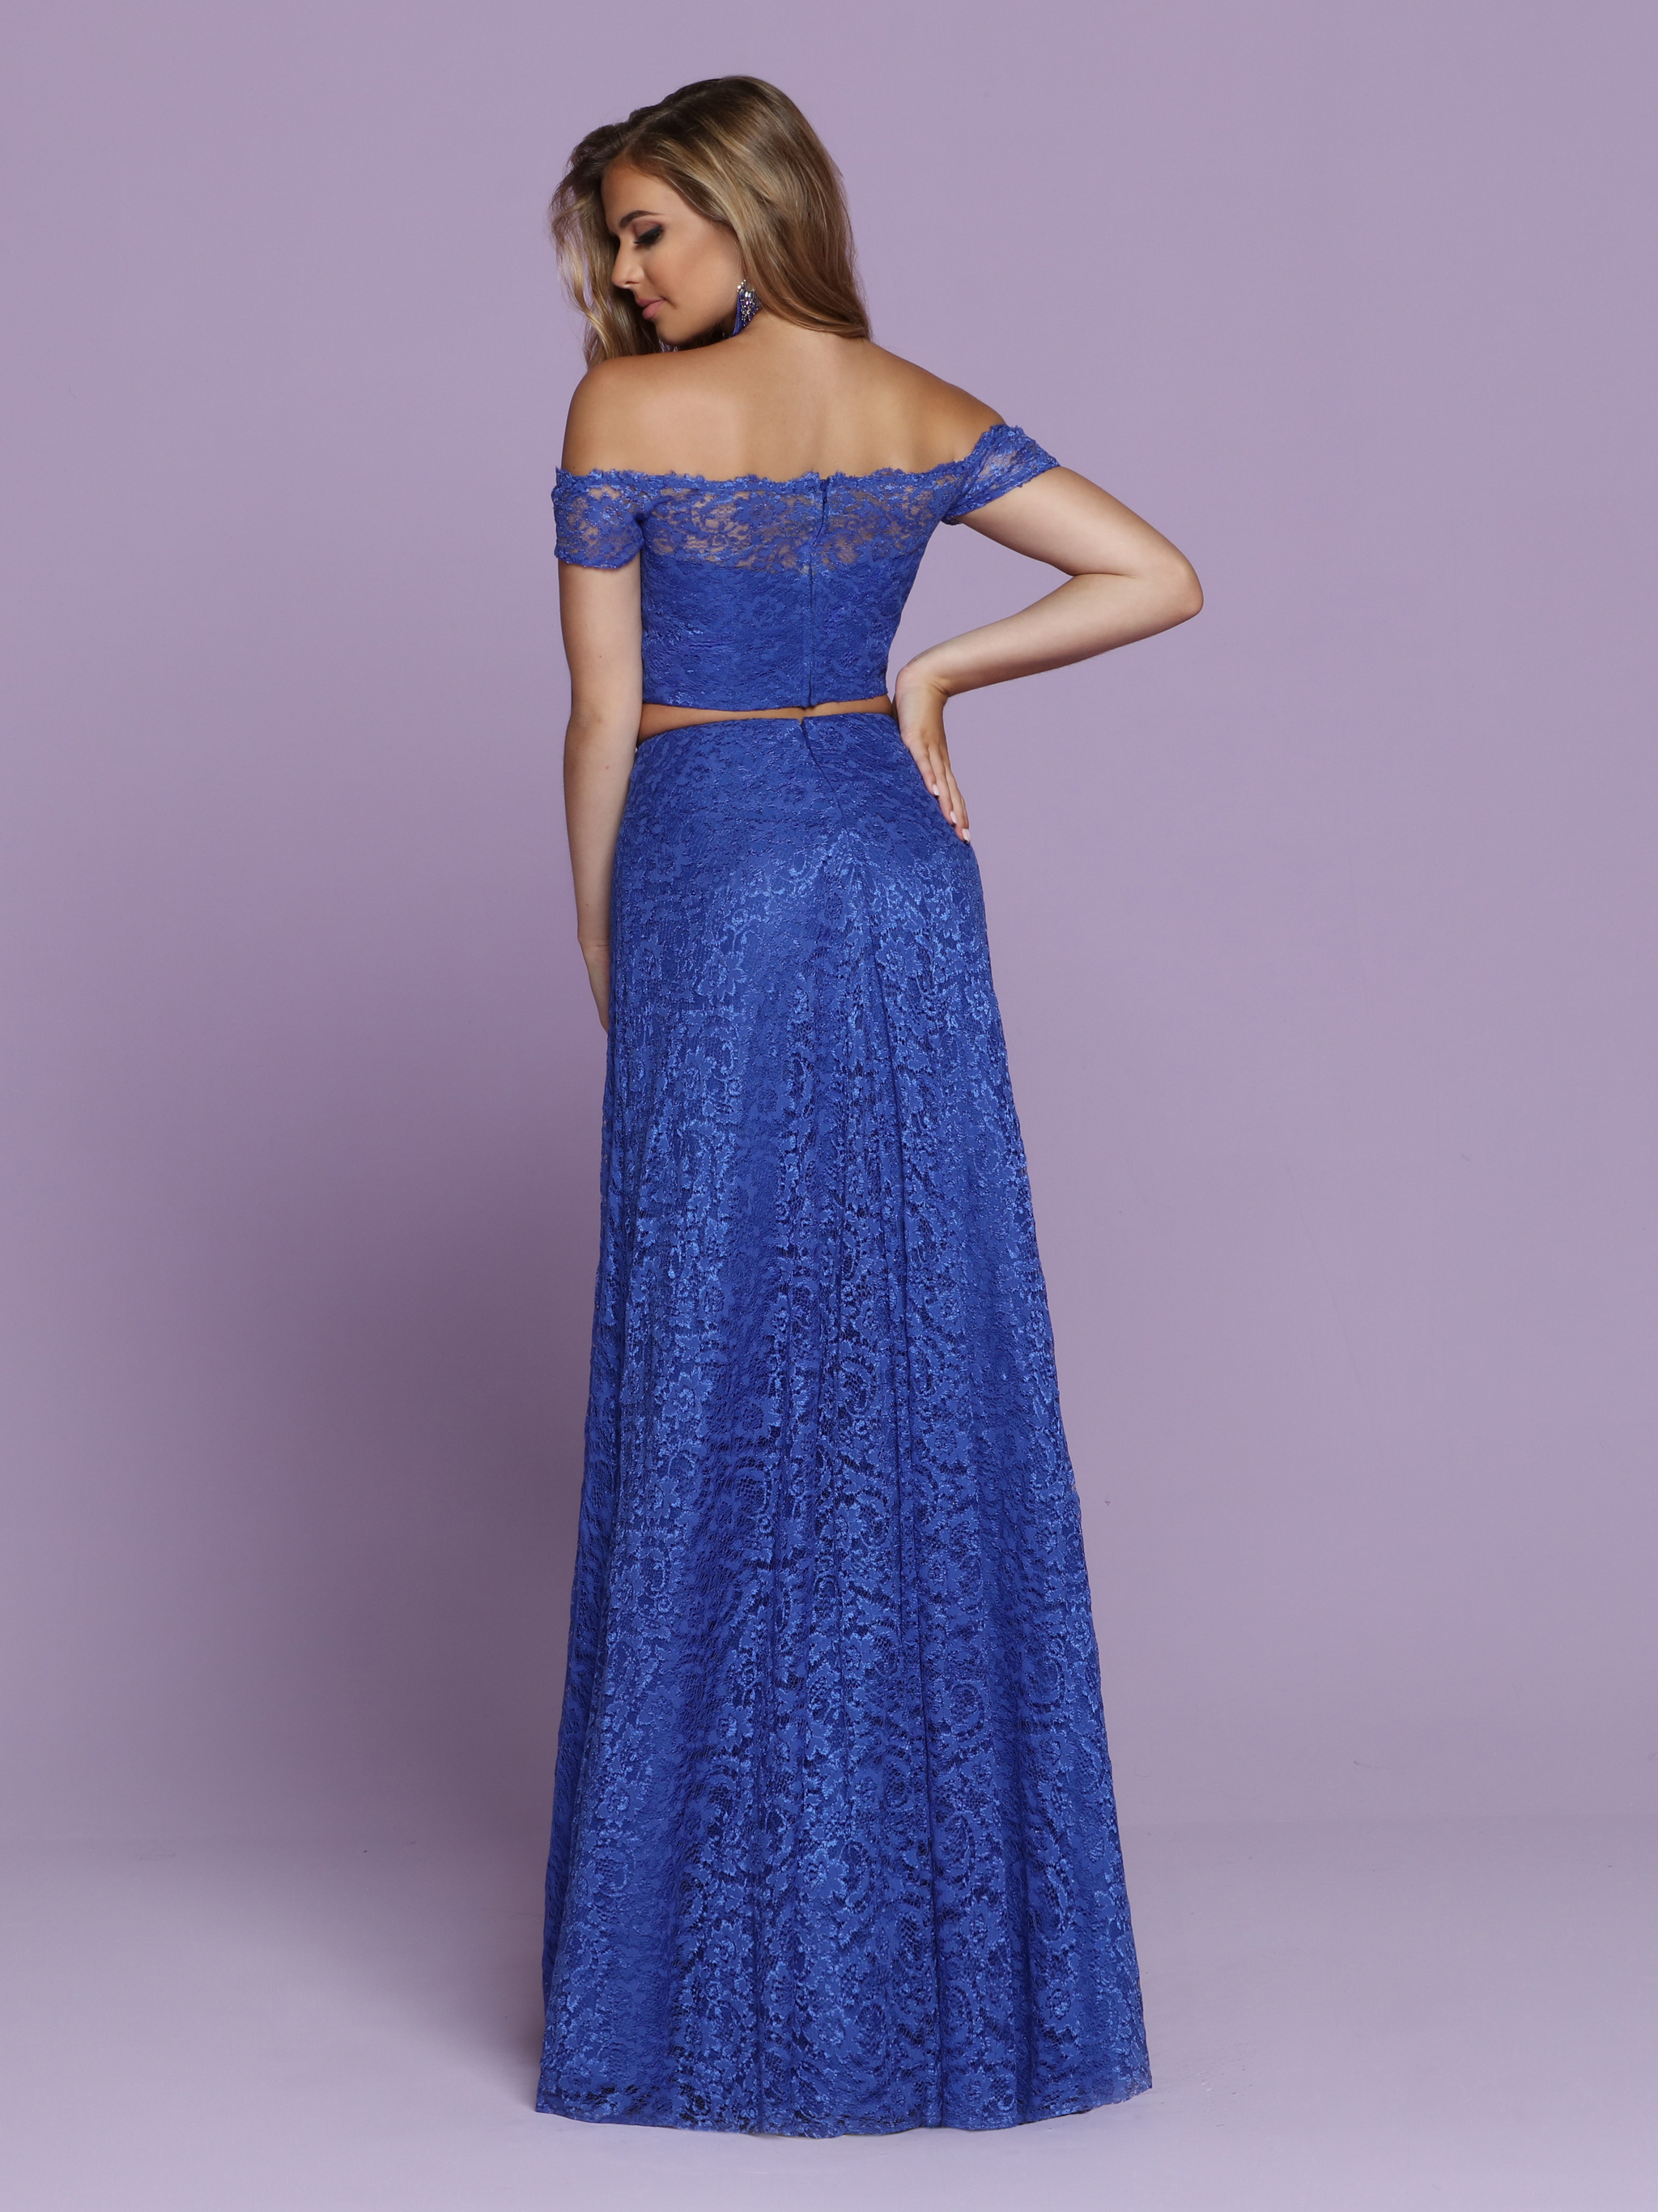 Image showing back view of style #72096